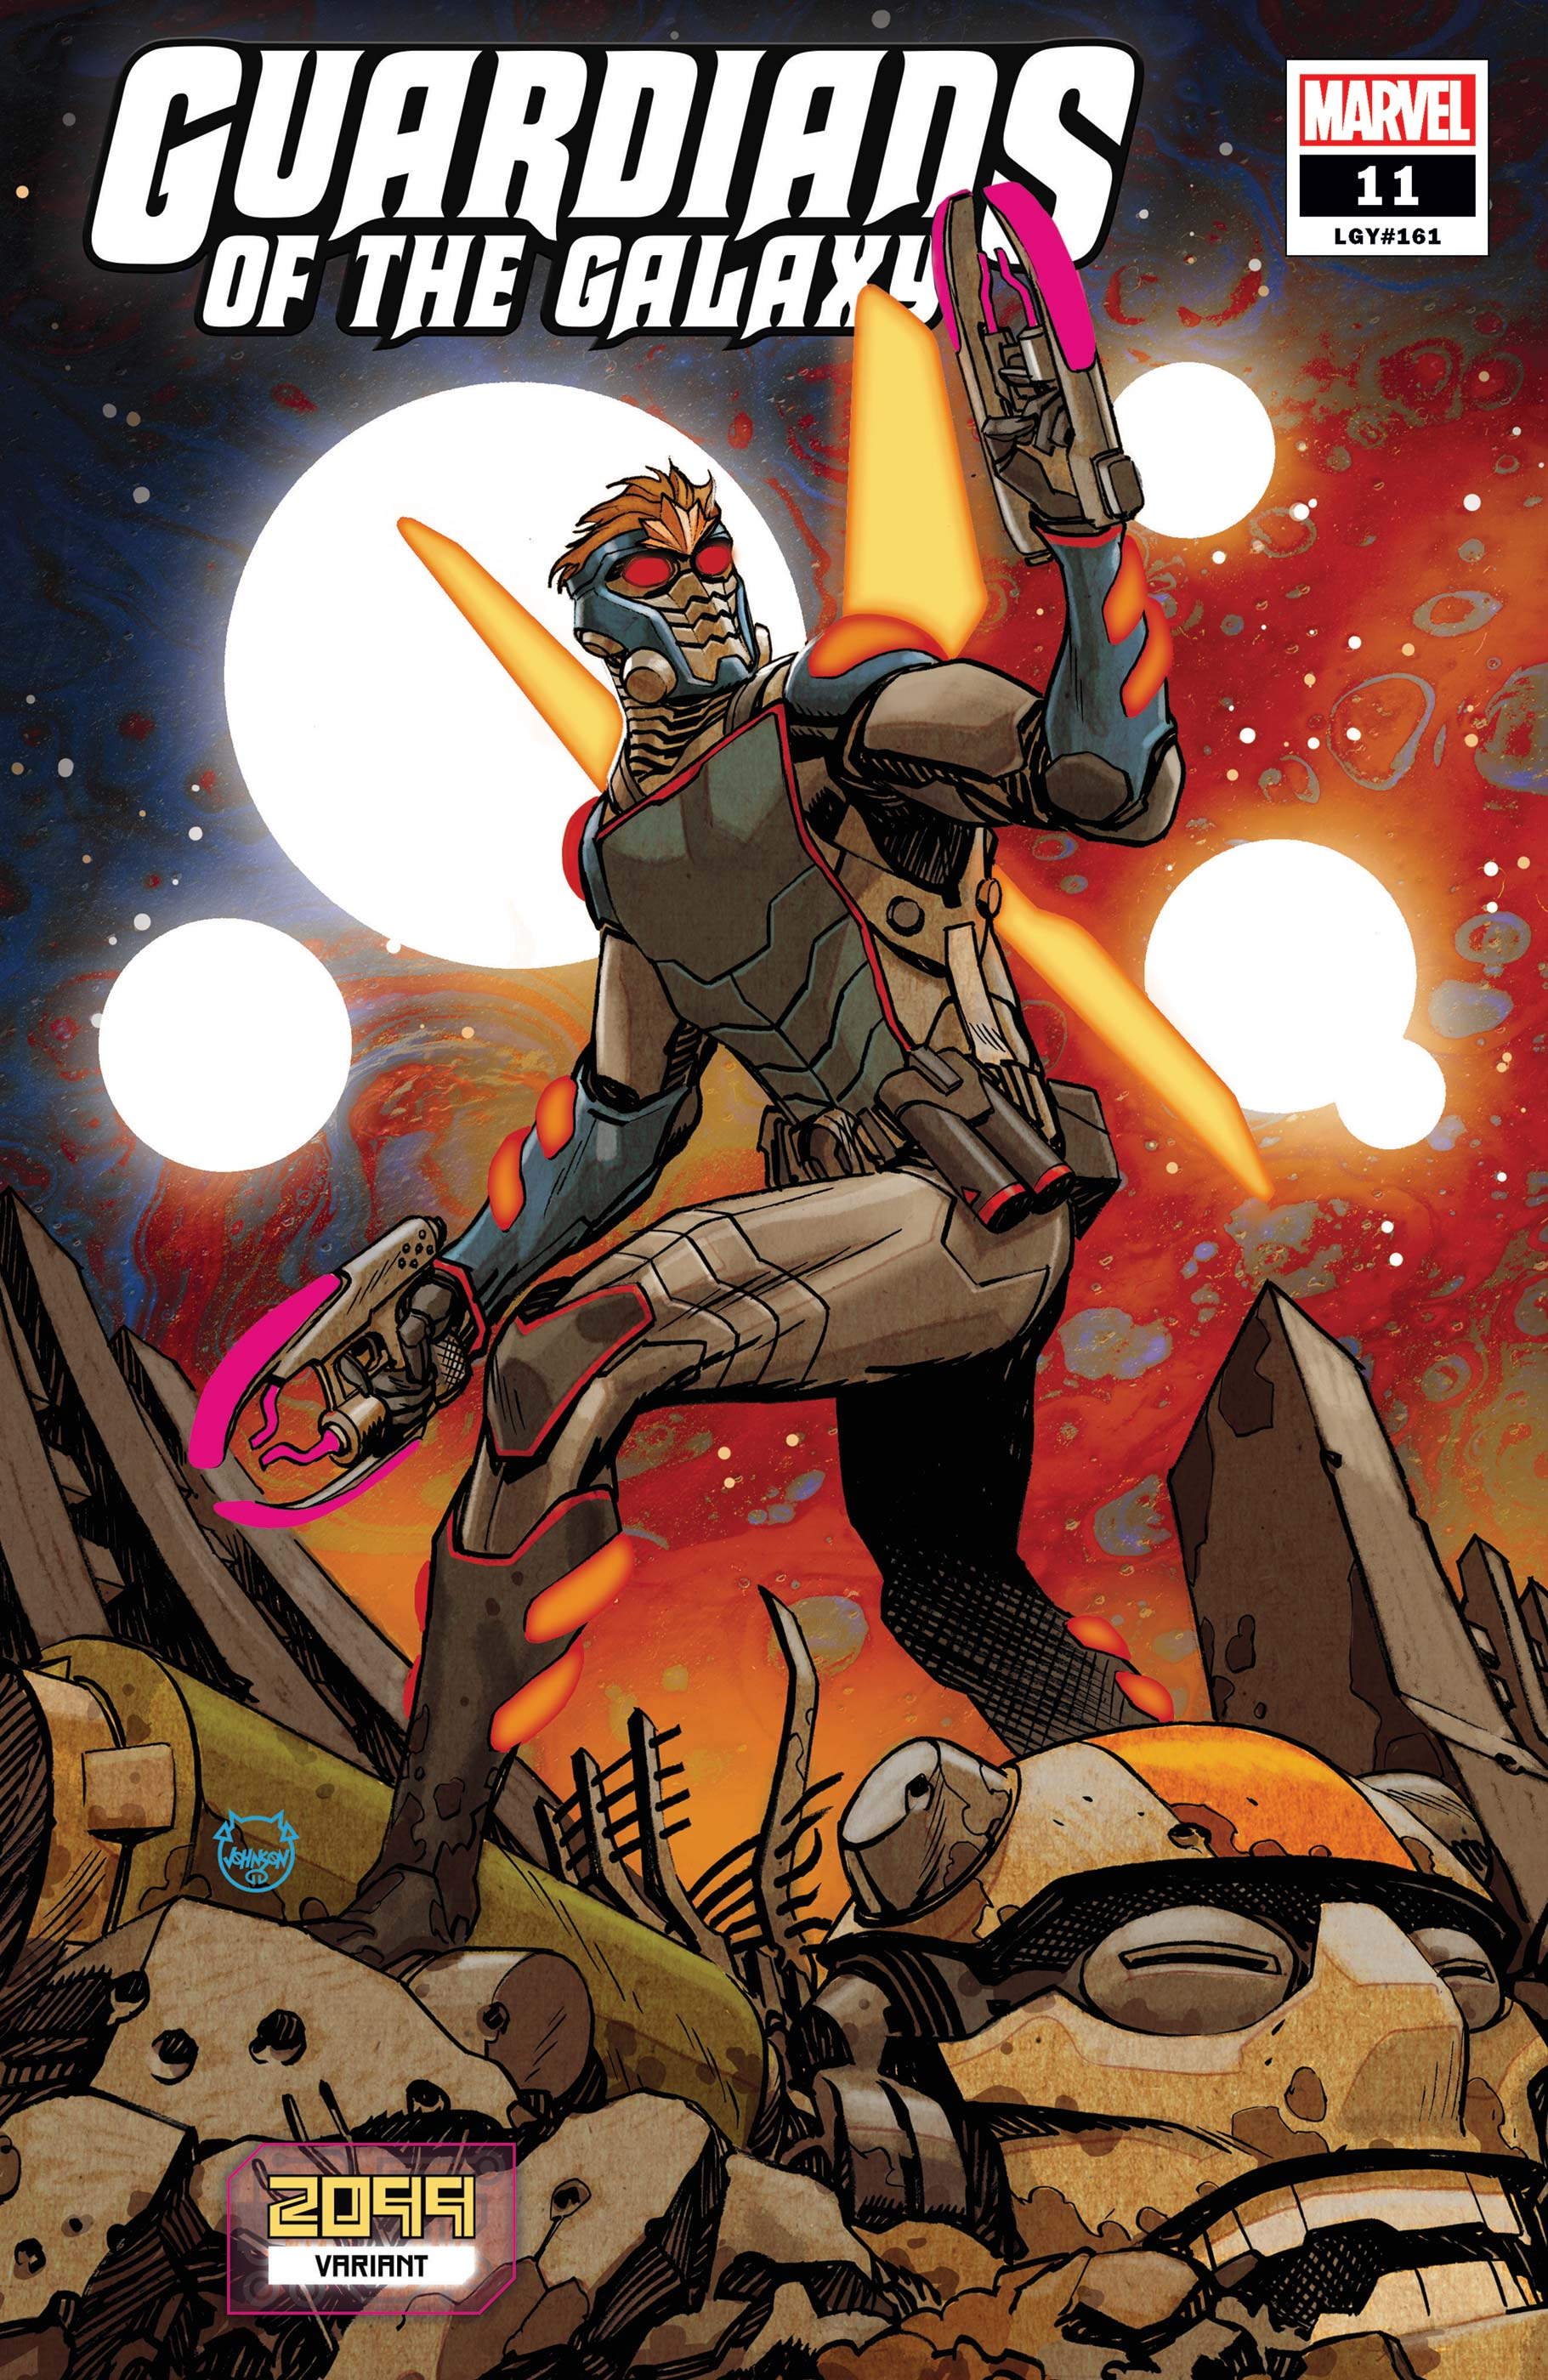 Guardians of the Galaxy (2019) #11 (Variant)